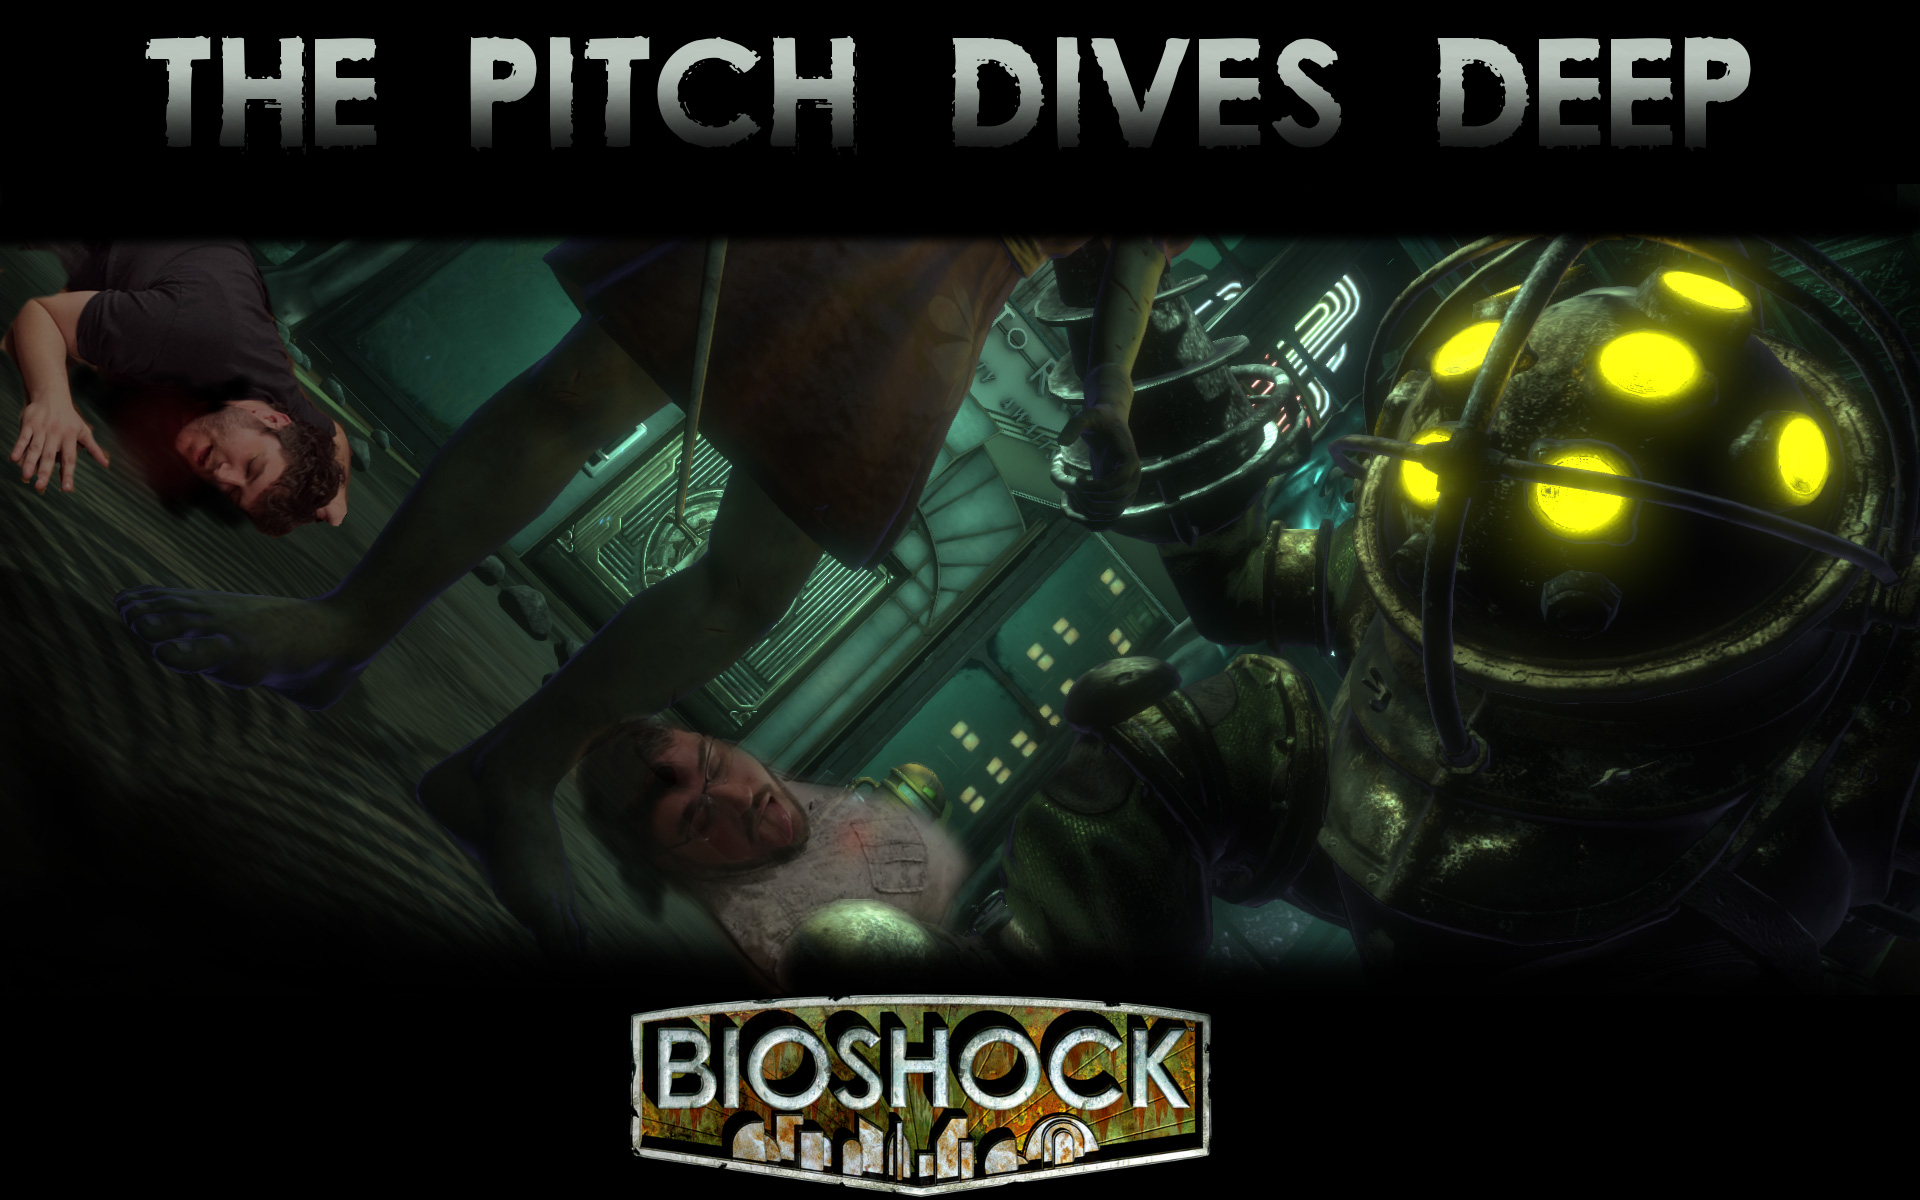 Pitchbioshockcoverfinal2.jpeg